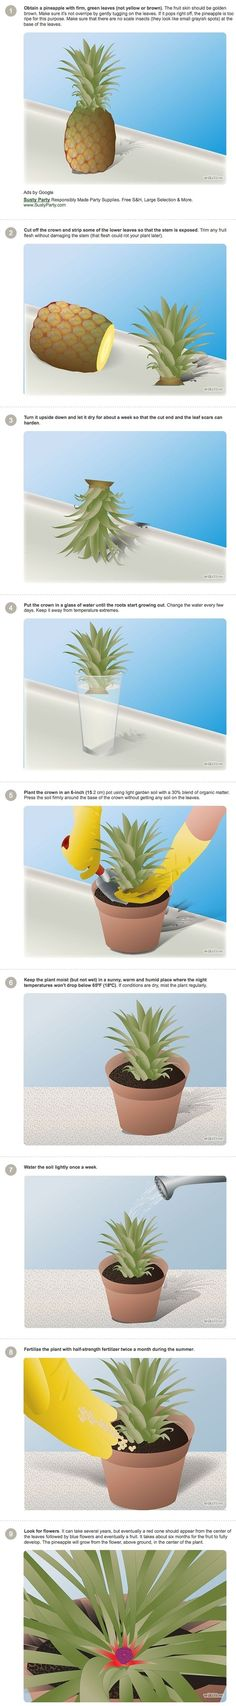 VALIDE - (Testé il y a plusieurs années, malheureusement une mauvaise dilution d'engrais l'a tué ) - DIY- How to grow a pineapple: much more descriptive than the other one I pinned